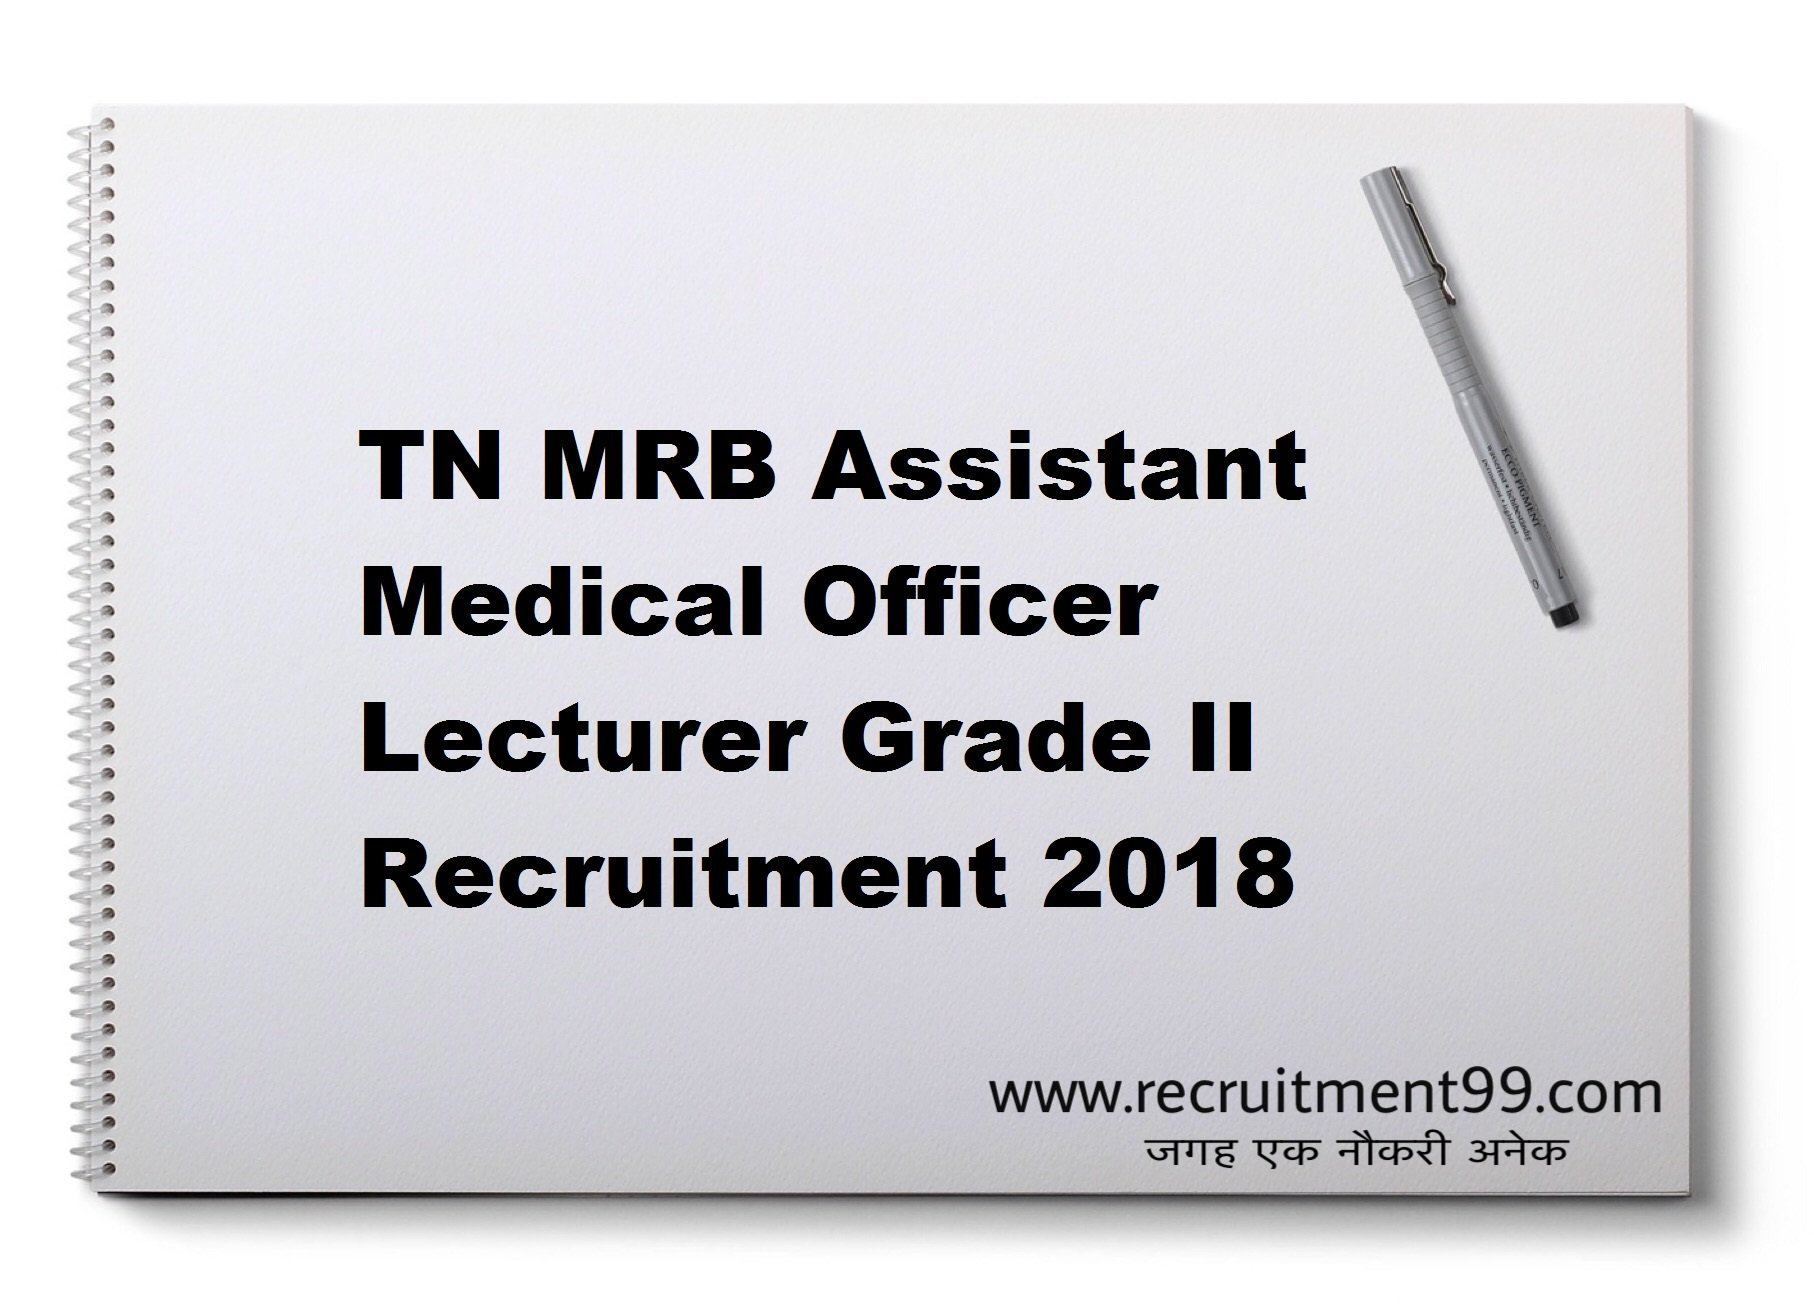 TN MRB Assistant Medical Officer Lecturer Grade II Recruitment Hall Ticket Result 2018